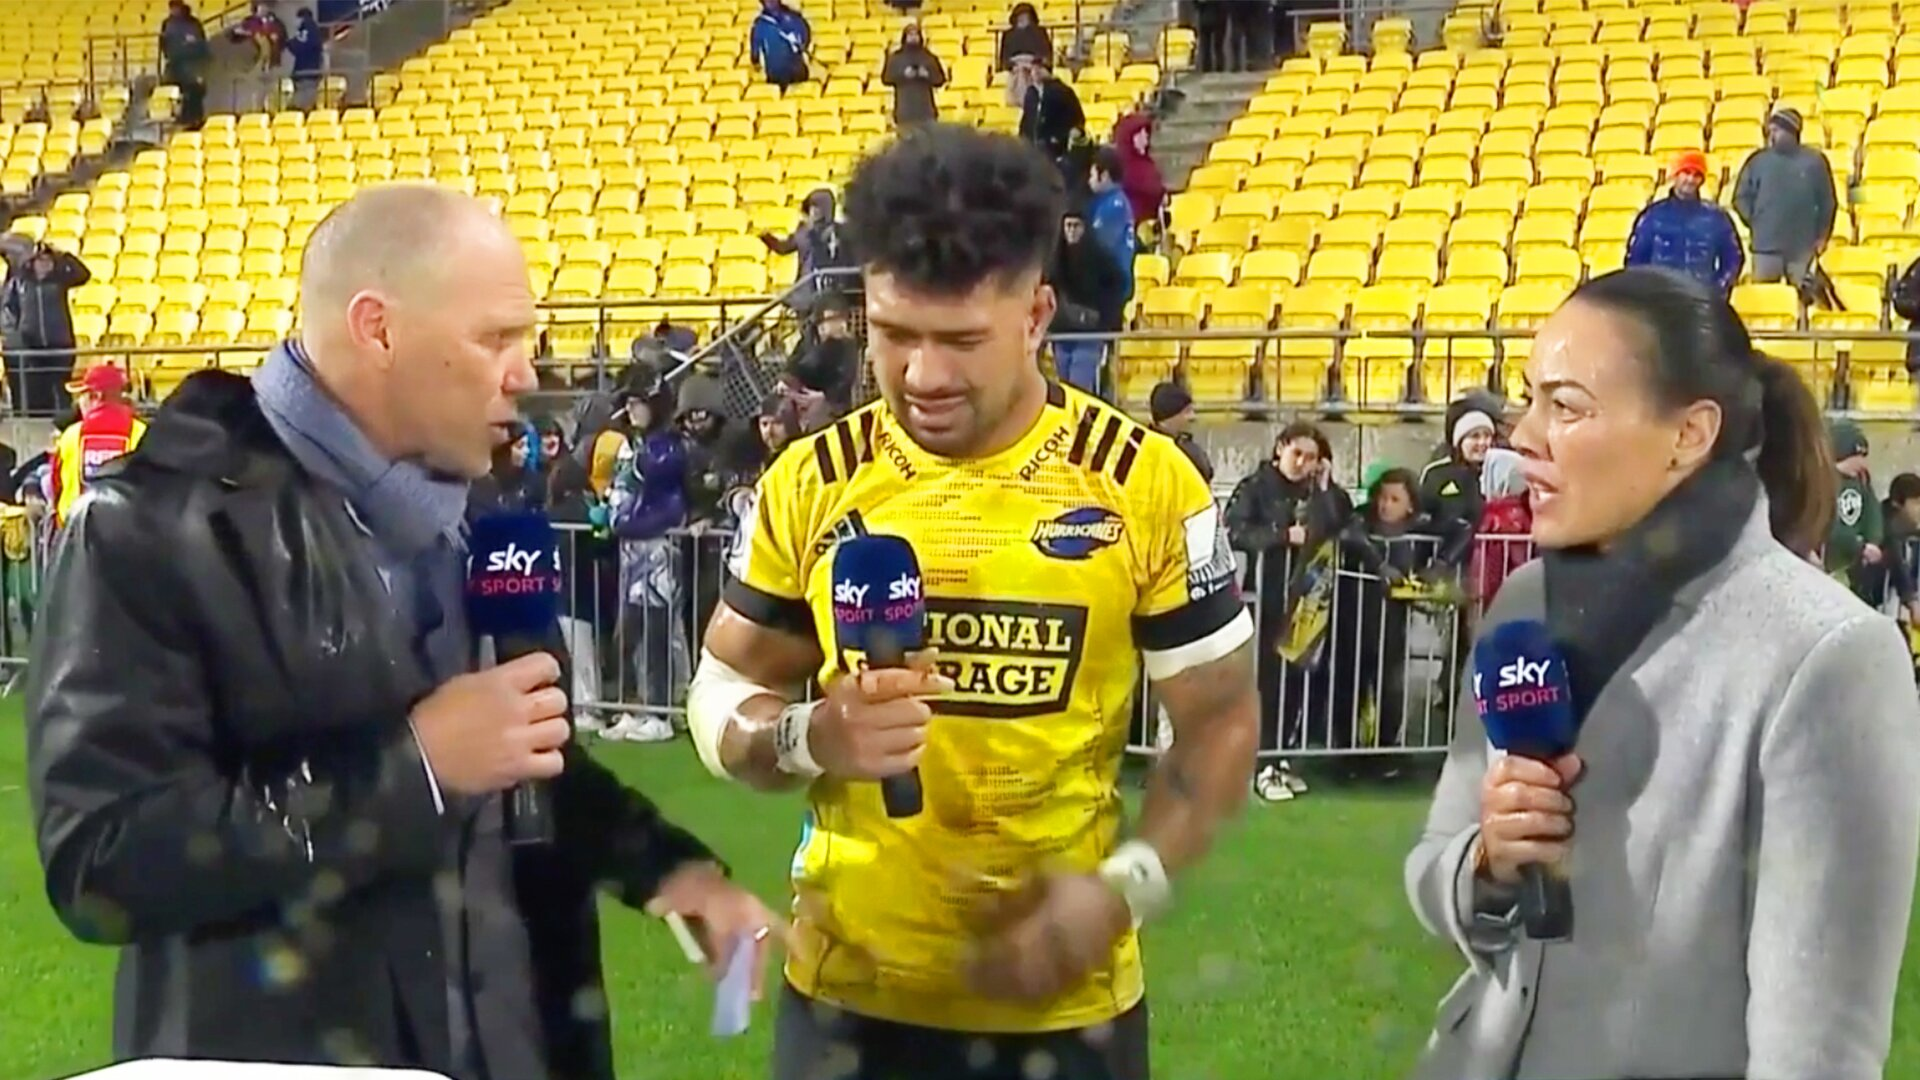 Jeff Wilson and Ardie Savea get into incredibly awkward moment during live interview